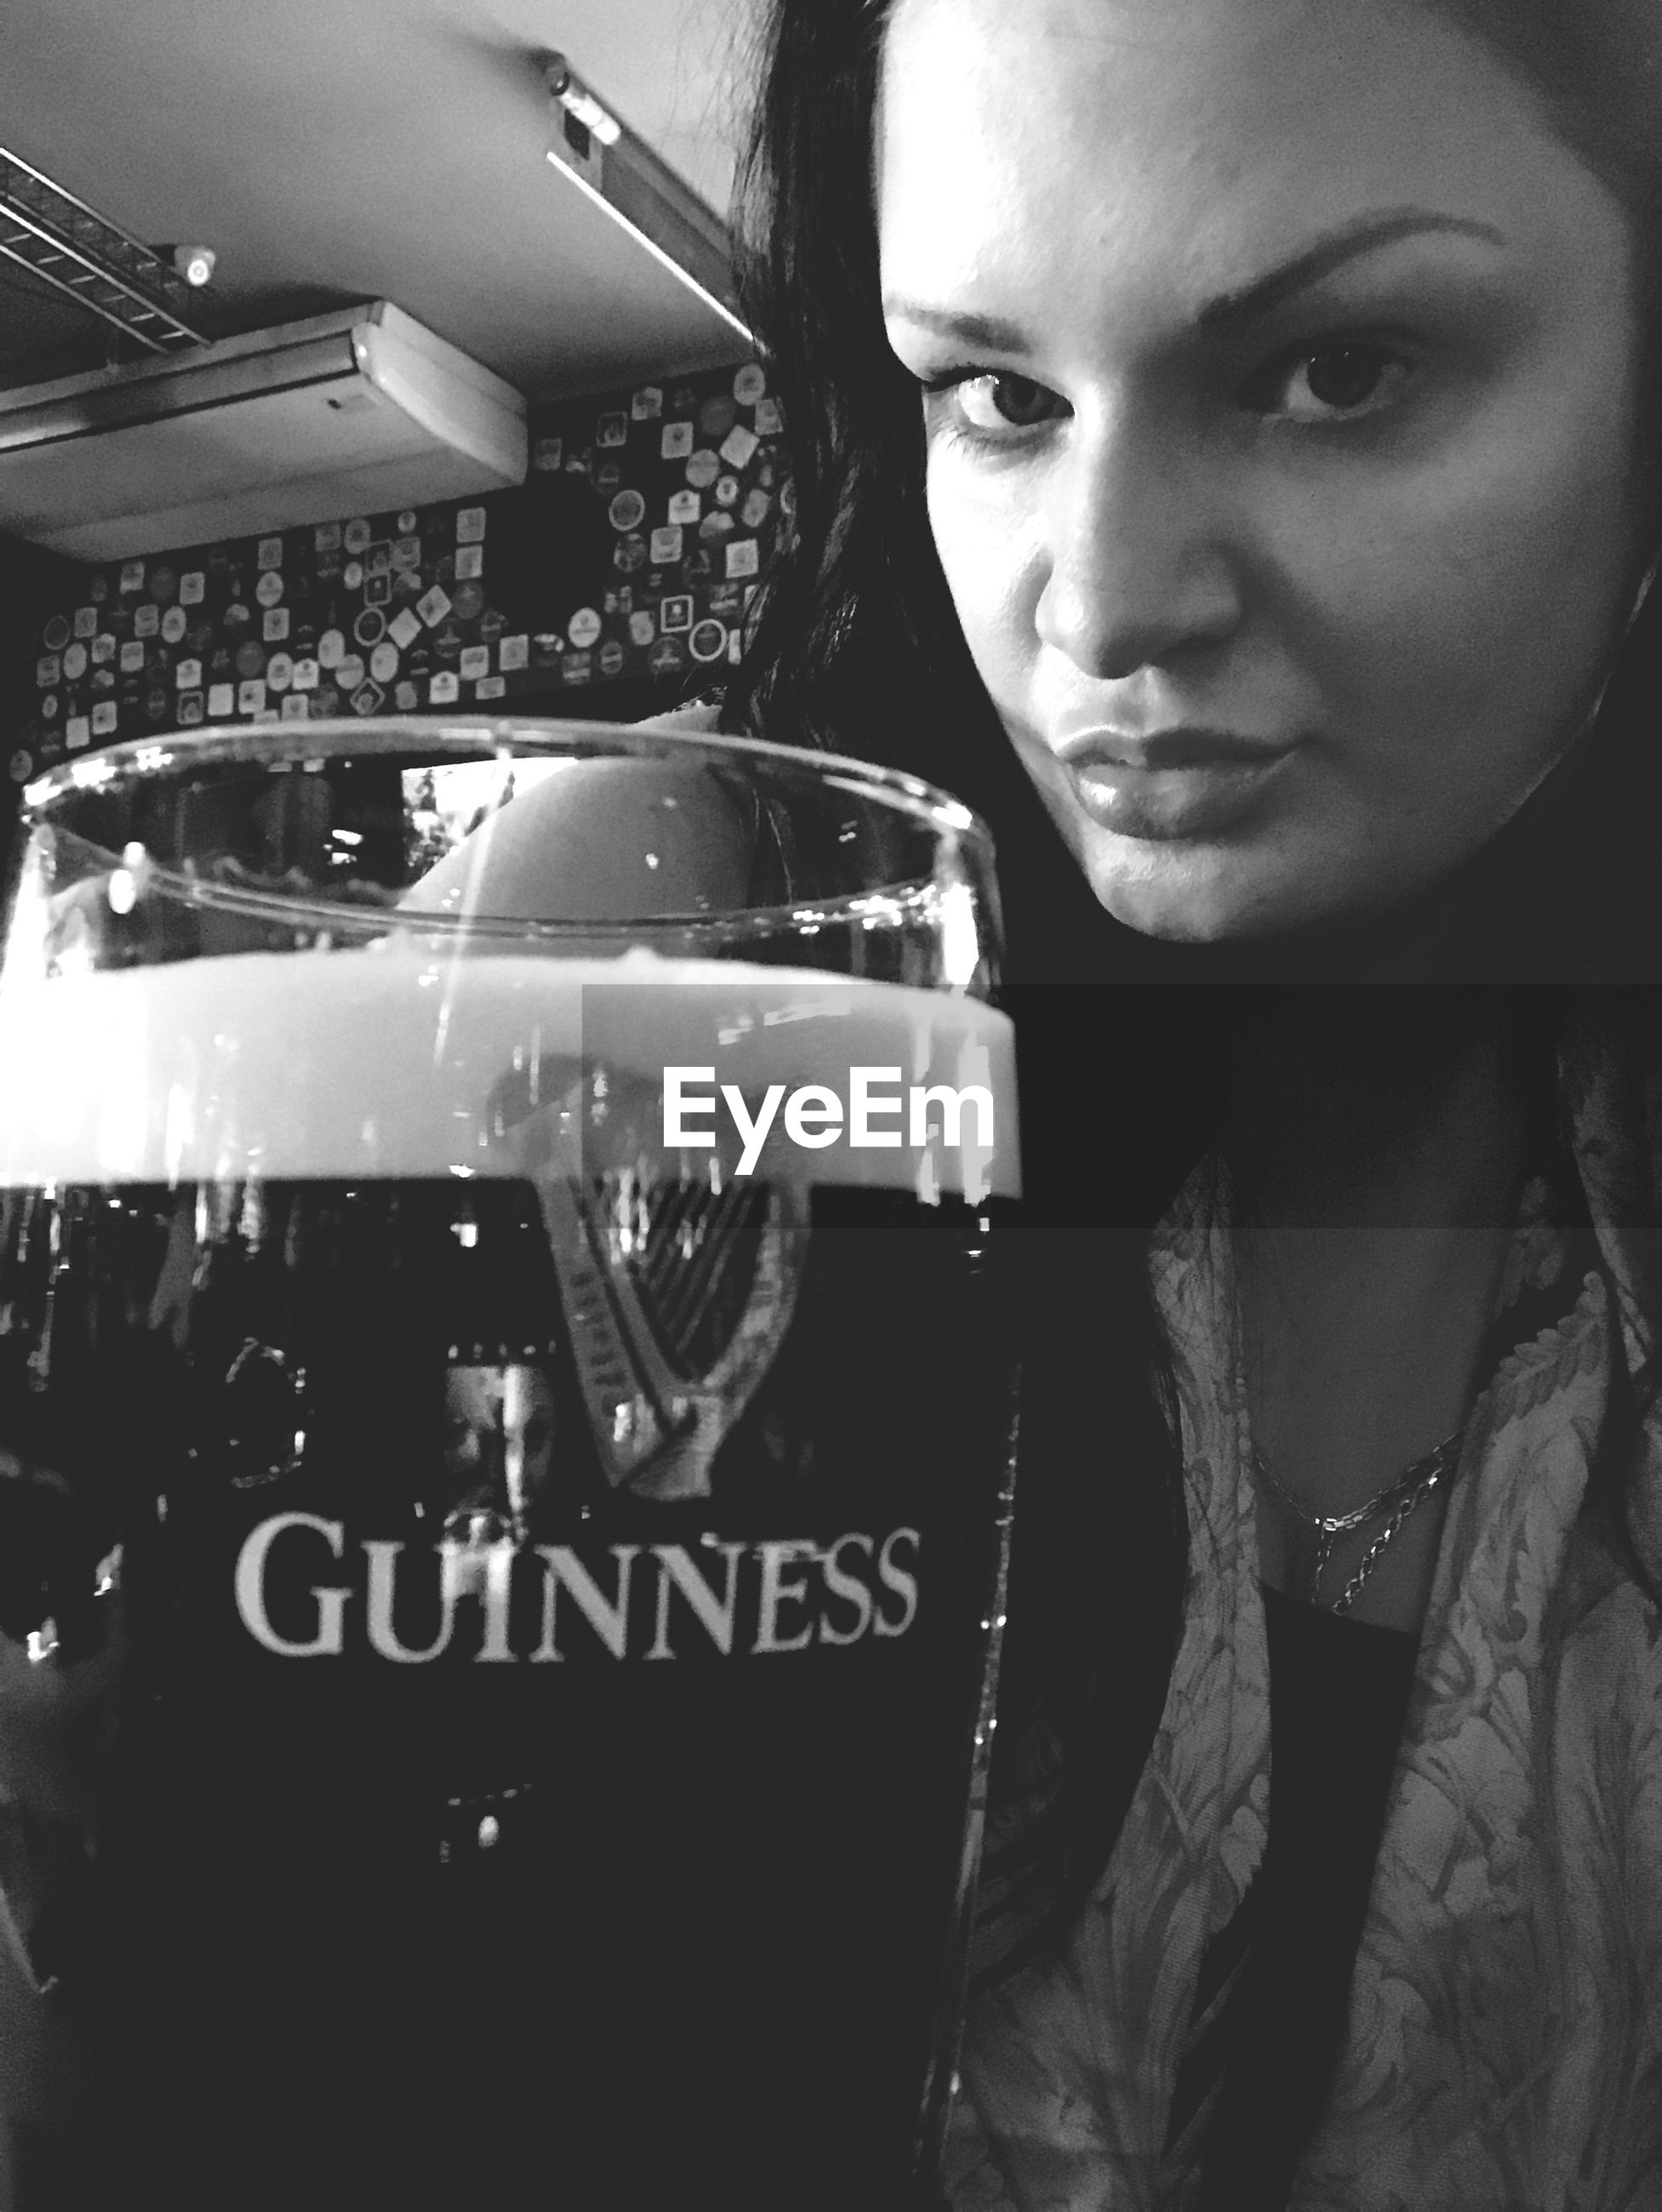 drink, alcohol, refreshment, one person, beer glass, drinking, real people, food and drink, frothy drink, close-up, headshot, portrait, freshness, young adult, indoors, young women, day, adult, people